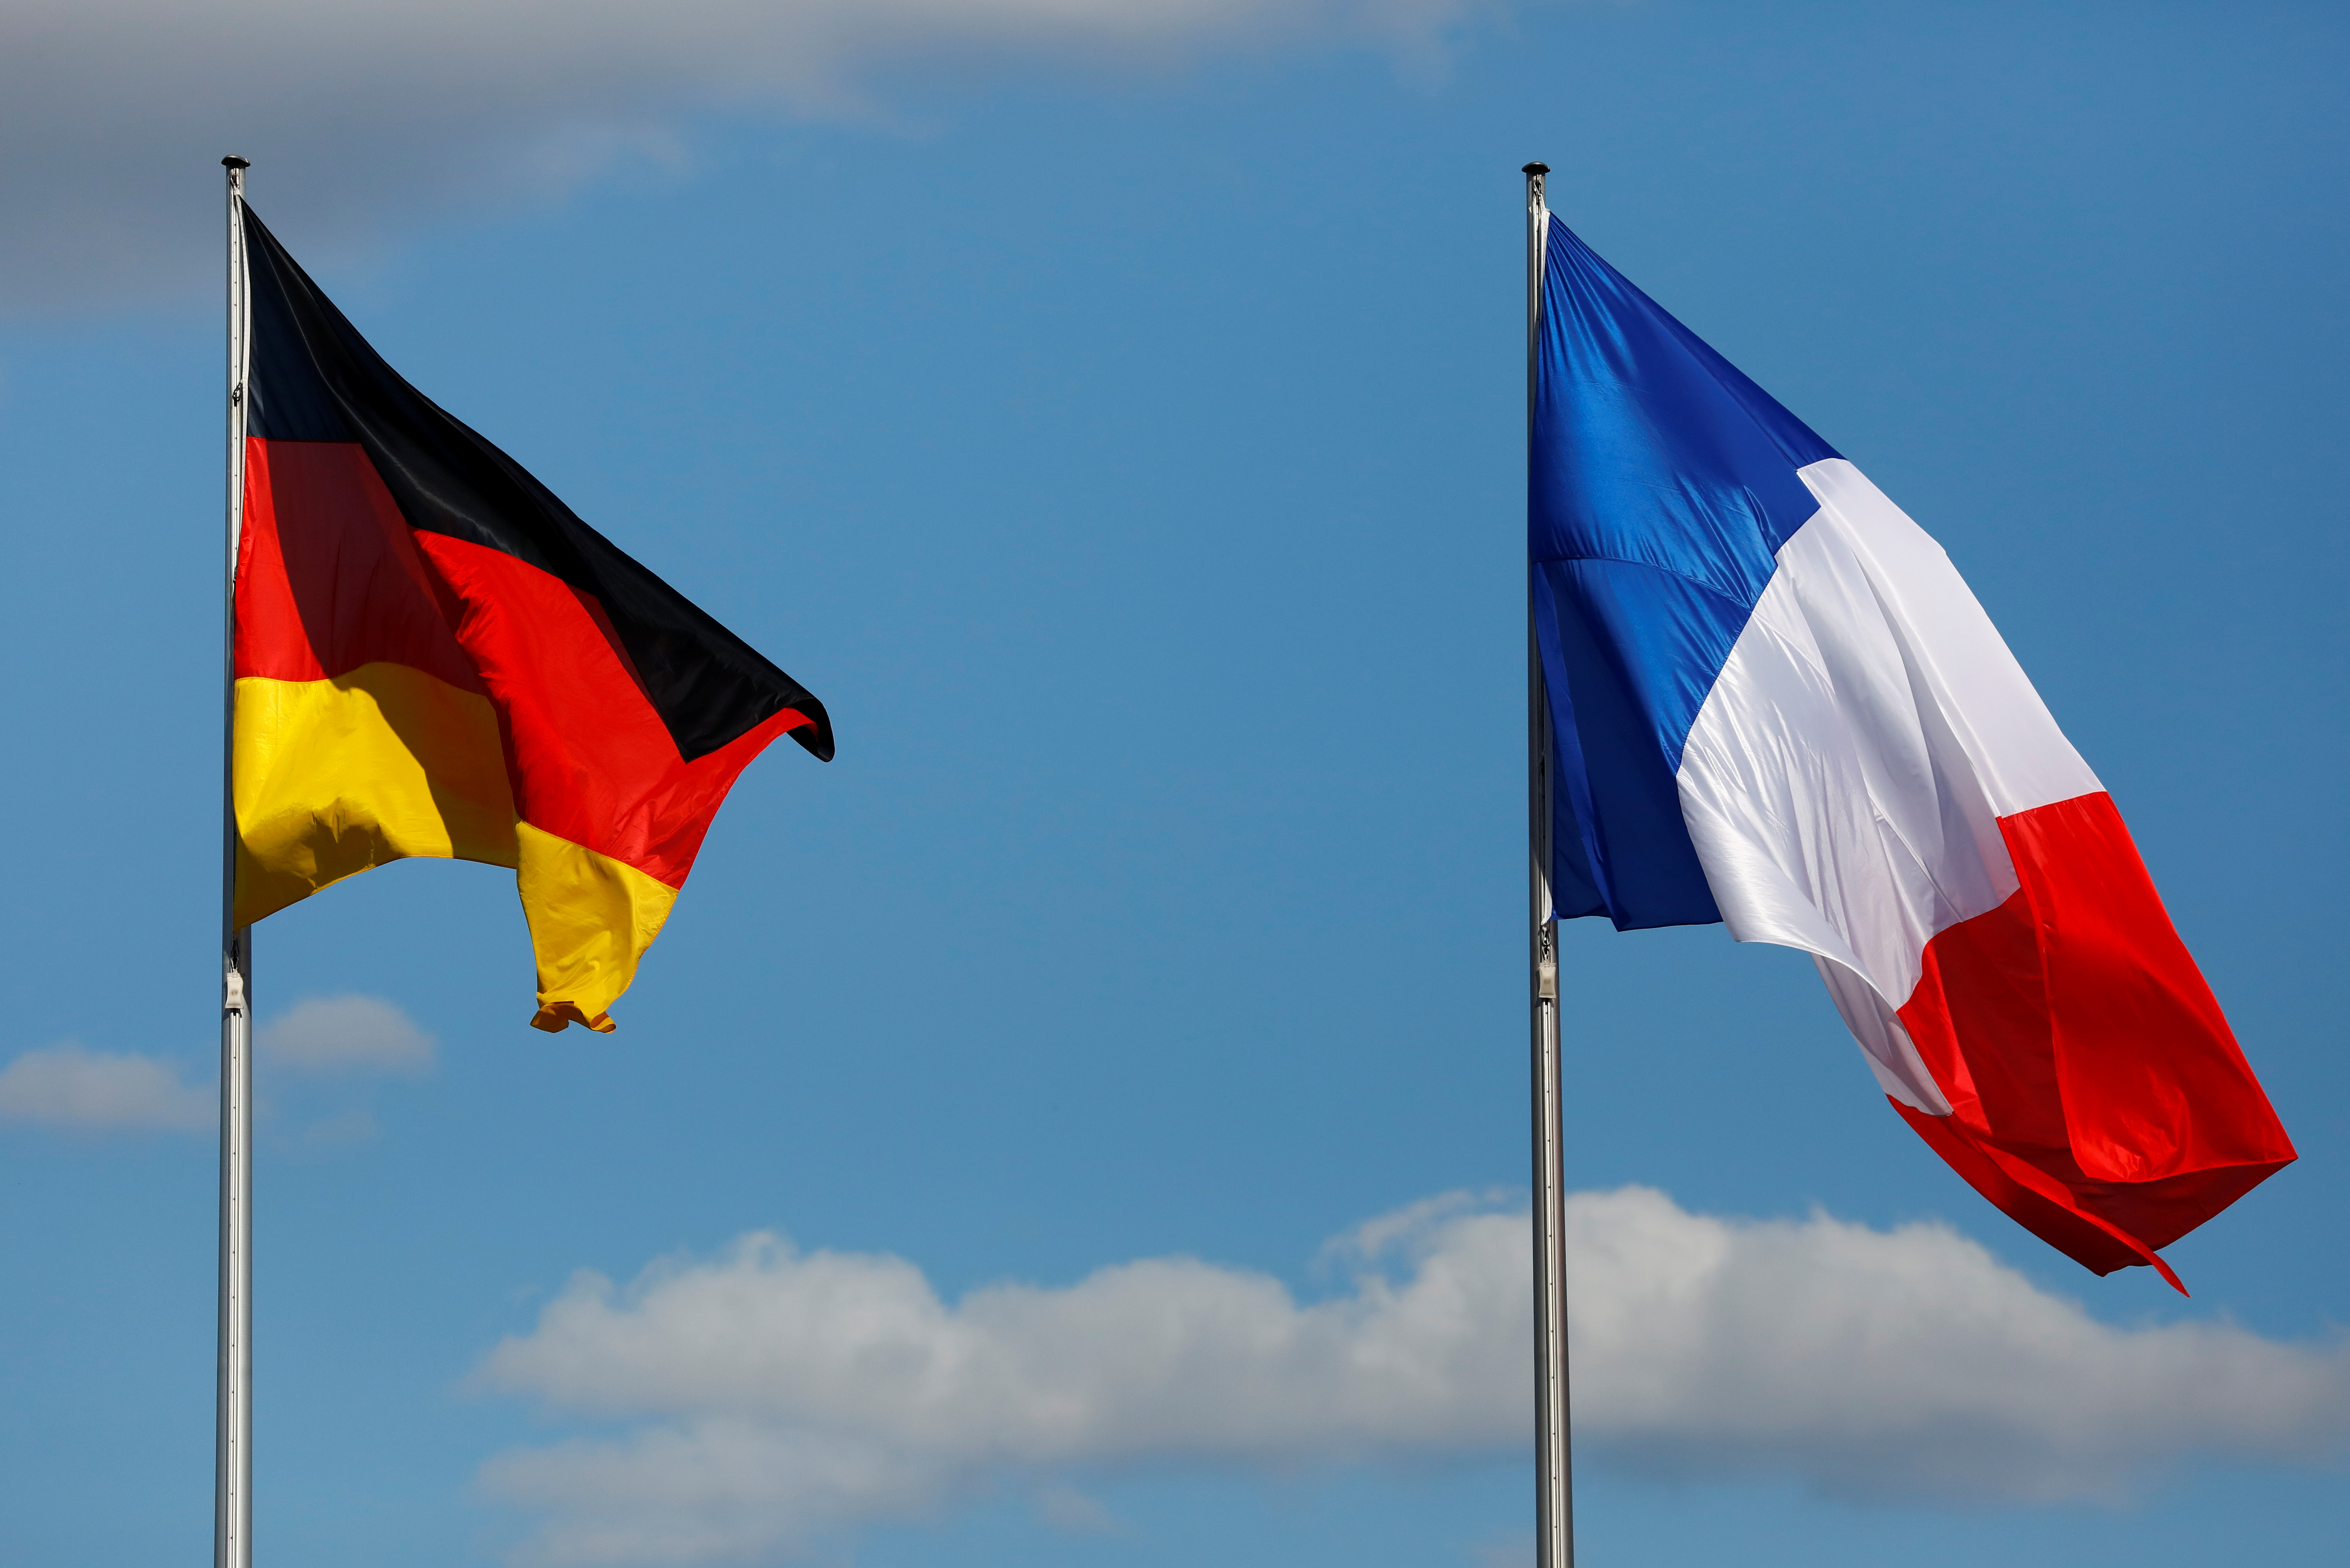 The flags of Germany and France are seen in front of the the Chancellery, before the meeting between German Chancellor Angela Merkel and French President Emmanuel Macron in Berlin, Germany May 15, 2017. REUTERS/Pawel Kopczynski